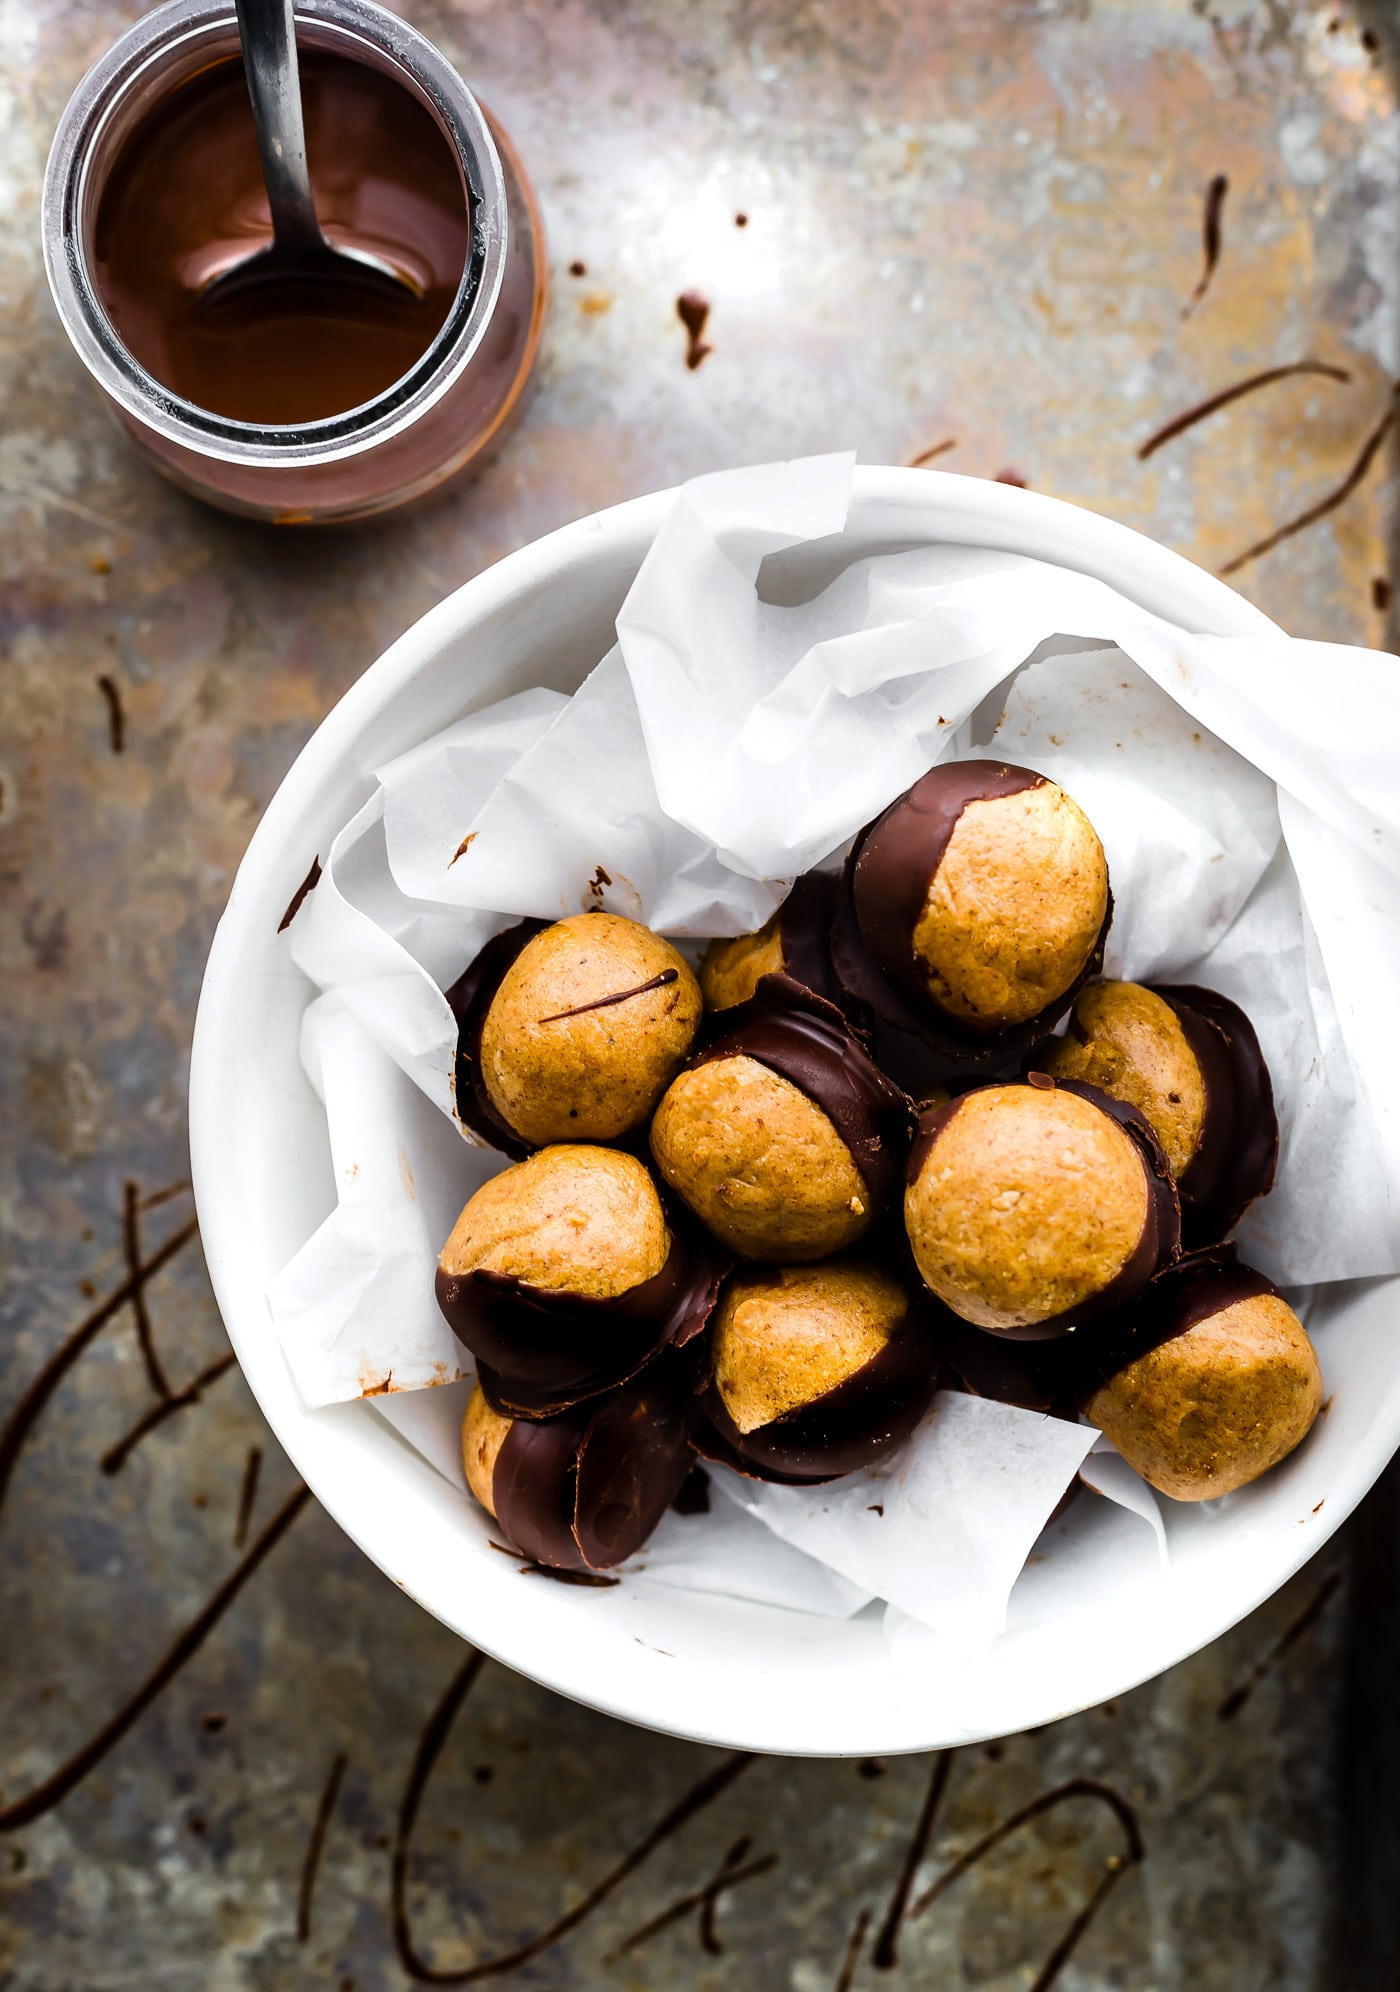 A Buckeyes Recipe Packed with Protein! These Vegan Peanut Butter Protein Buckeyes are super easy to make and coated in dairy free dark chocolate. Gluten free with a Paleo option. A classic Buckeyes Recipe with a healthy boost! No baking required so make as many as you can, mmm k?